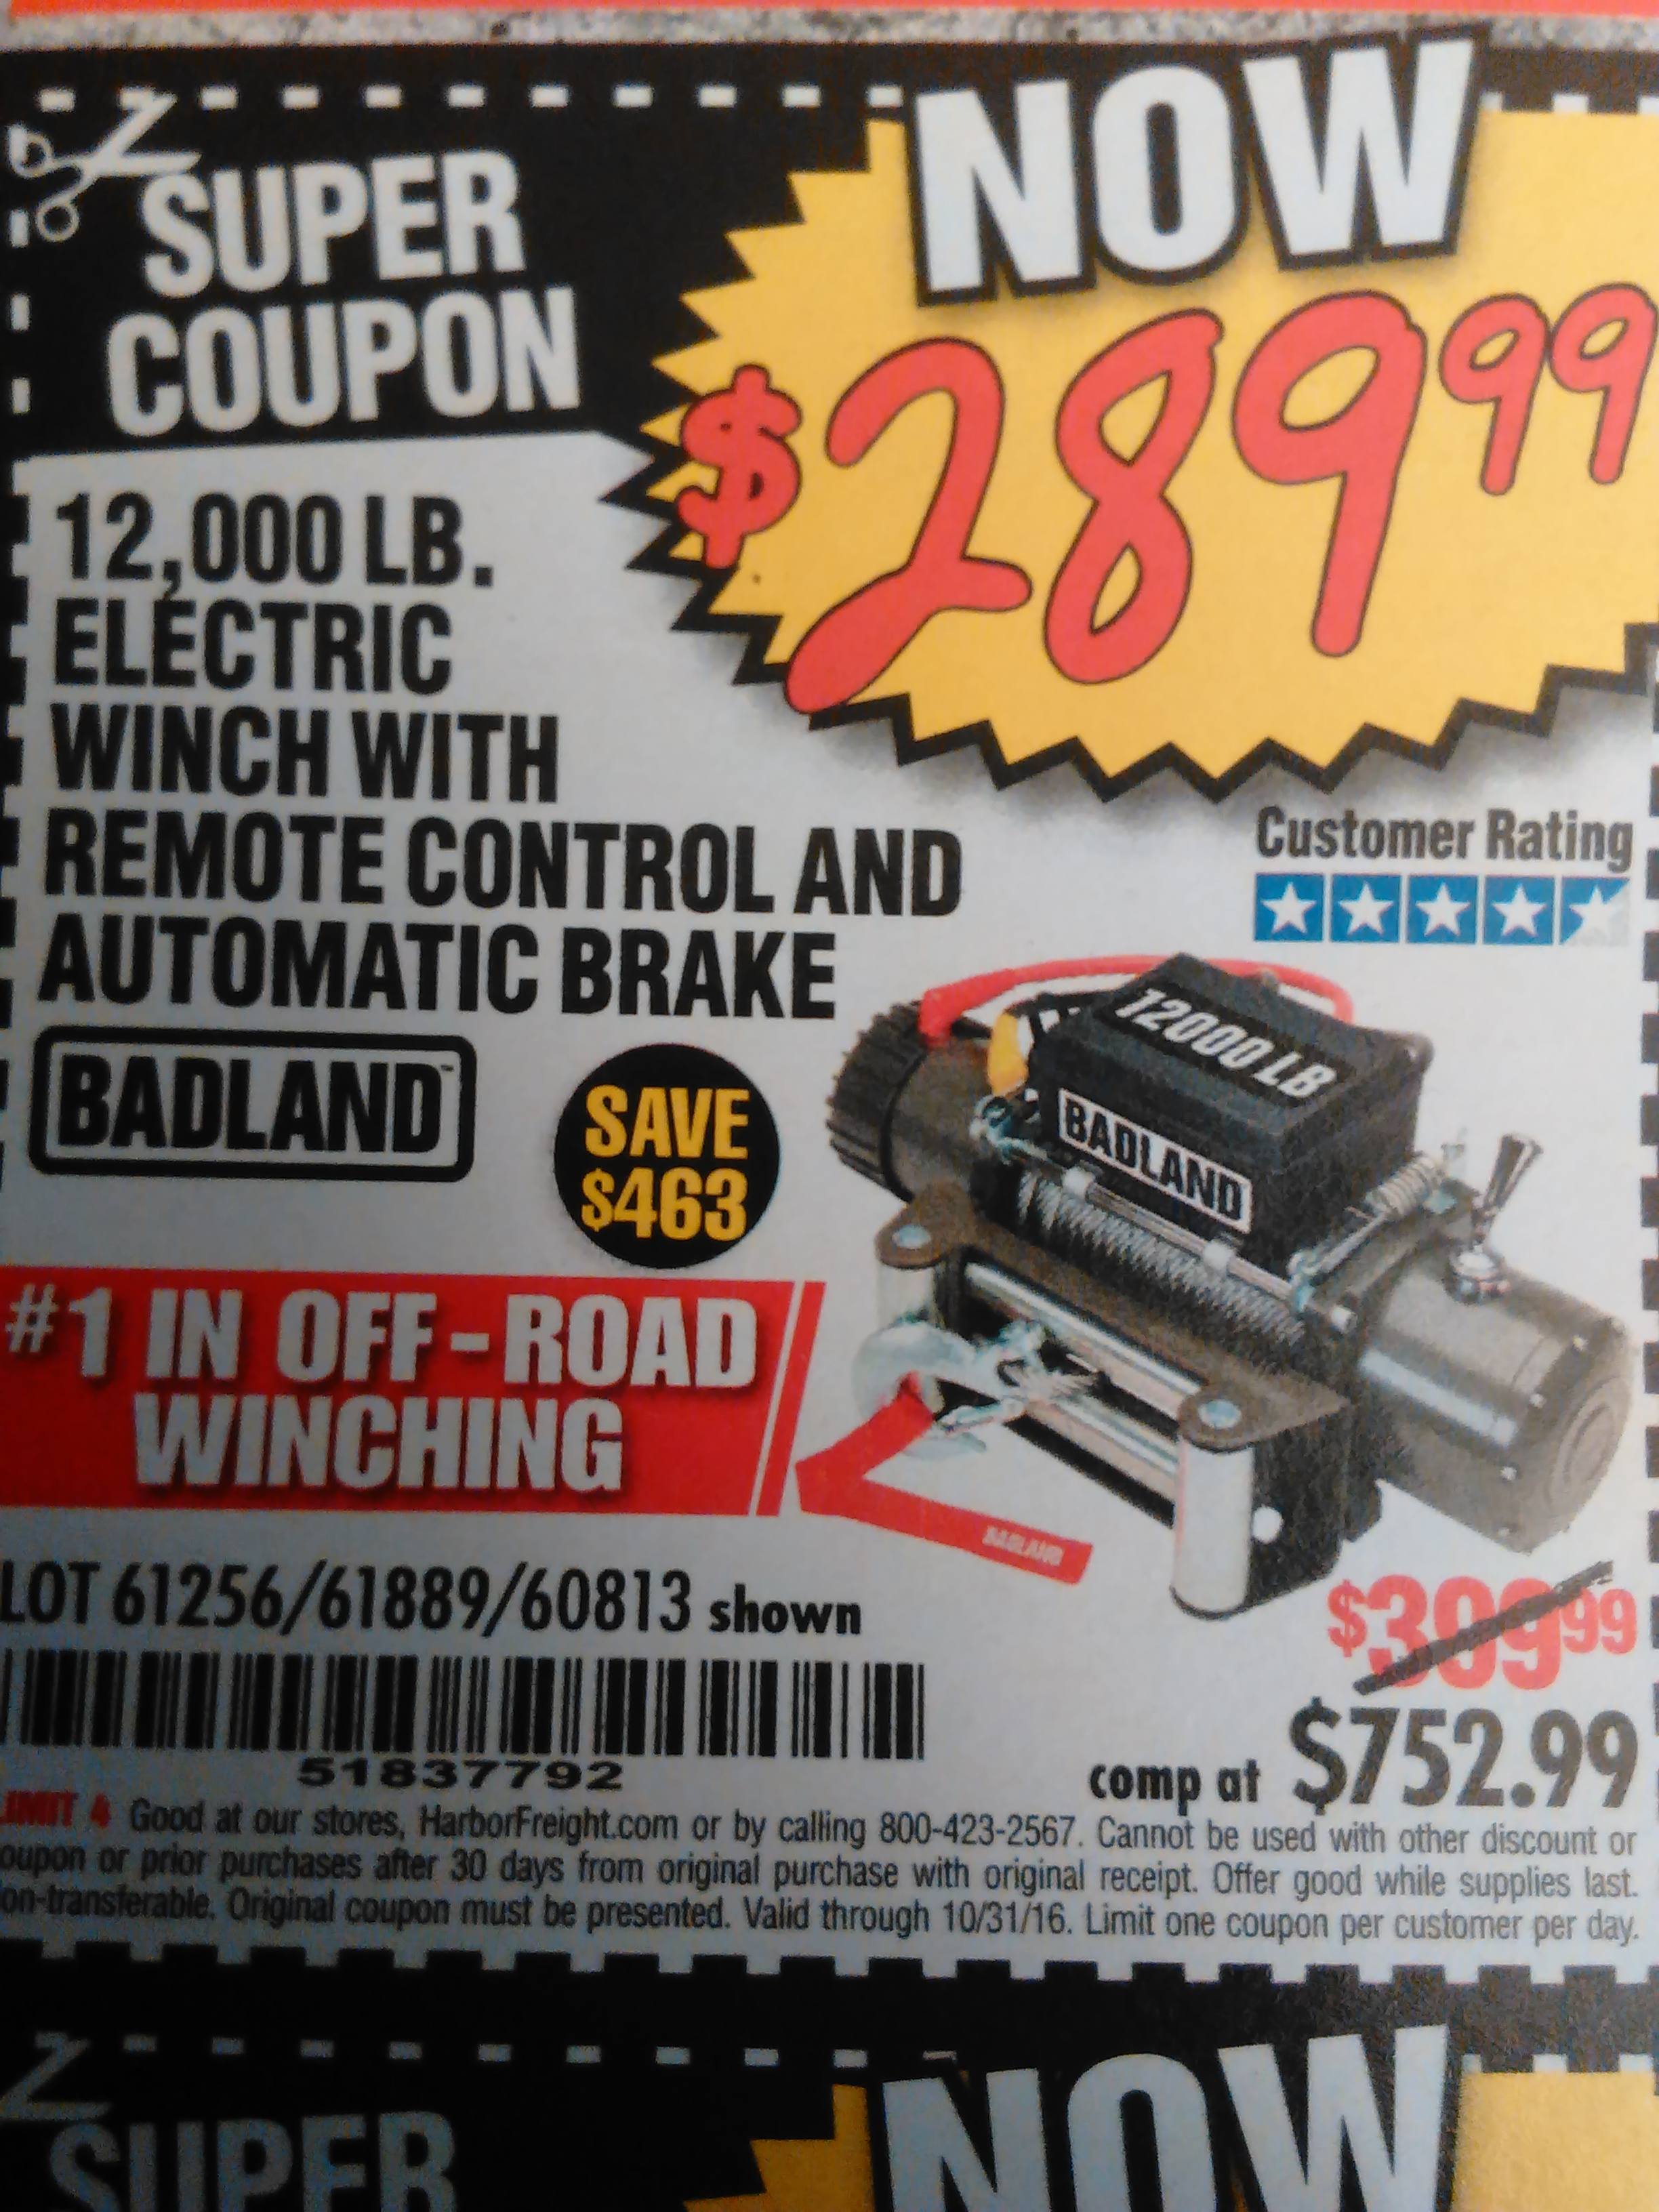 Harbor Freight Winch Coupon 12000 Omega Sports Printable Badland Wiring Diagram Lb Off Road Vehicle Electric W